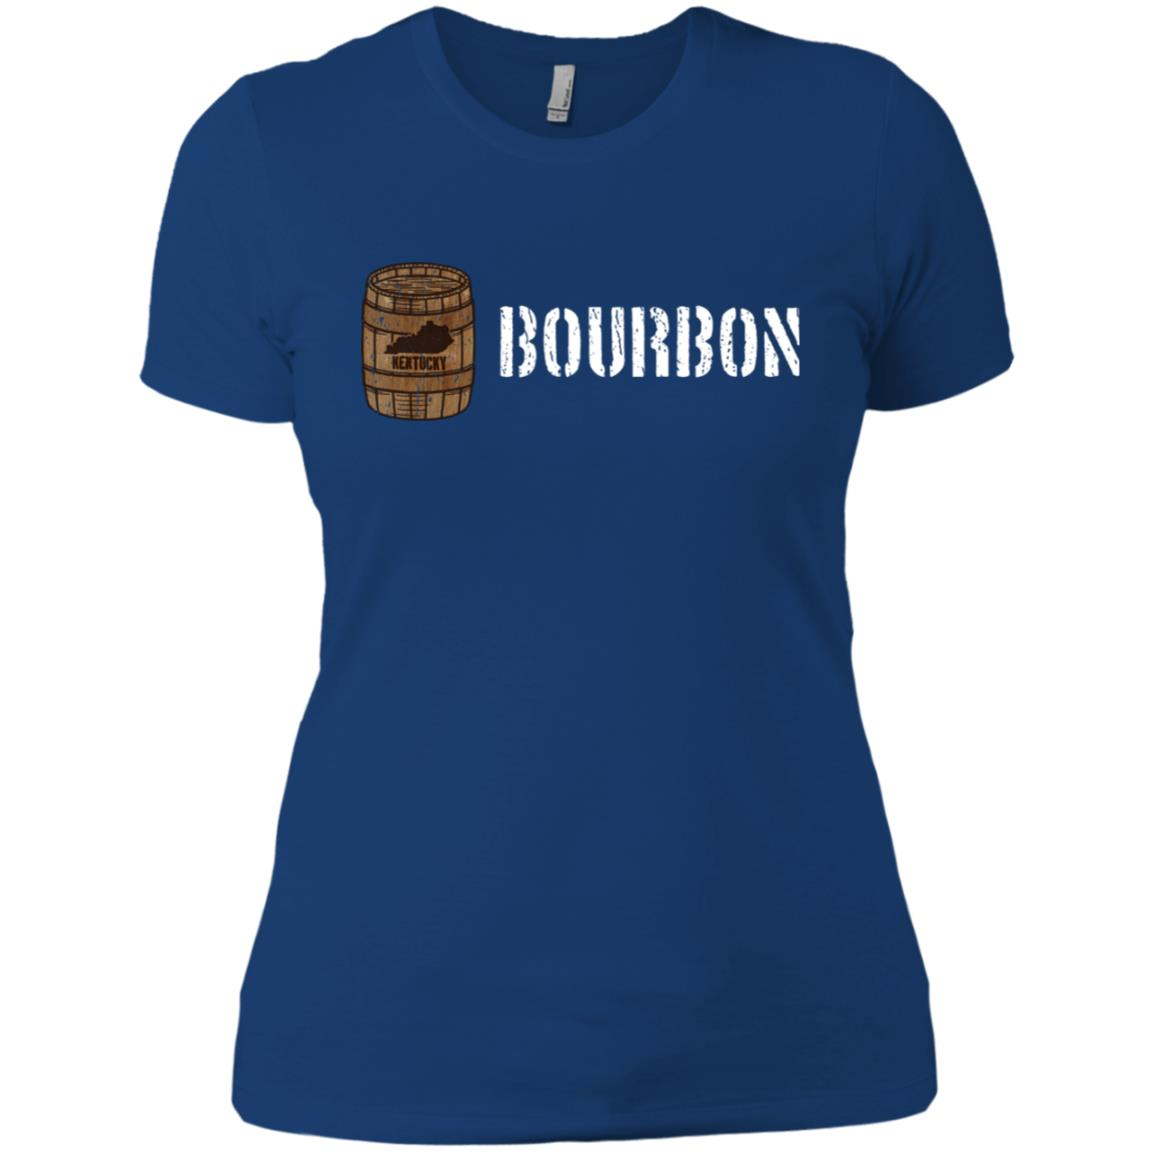 Bourbon – Distilled Bourbon Whiskey Gift Women Short Sleeve